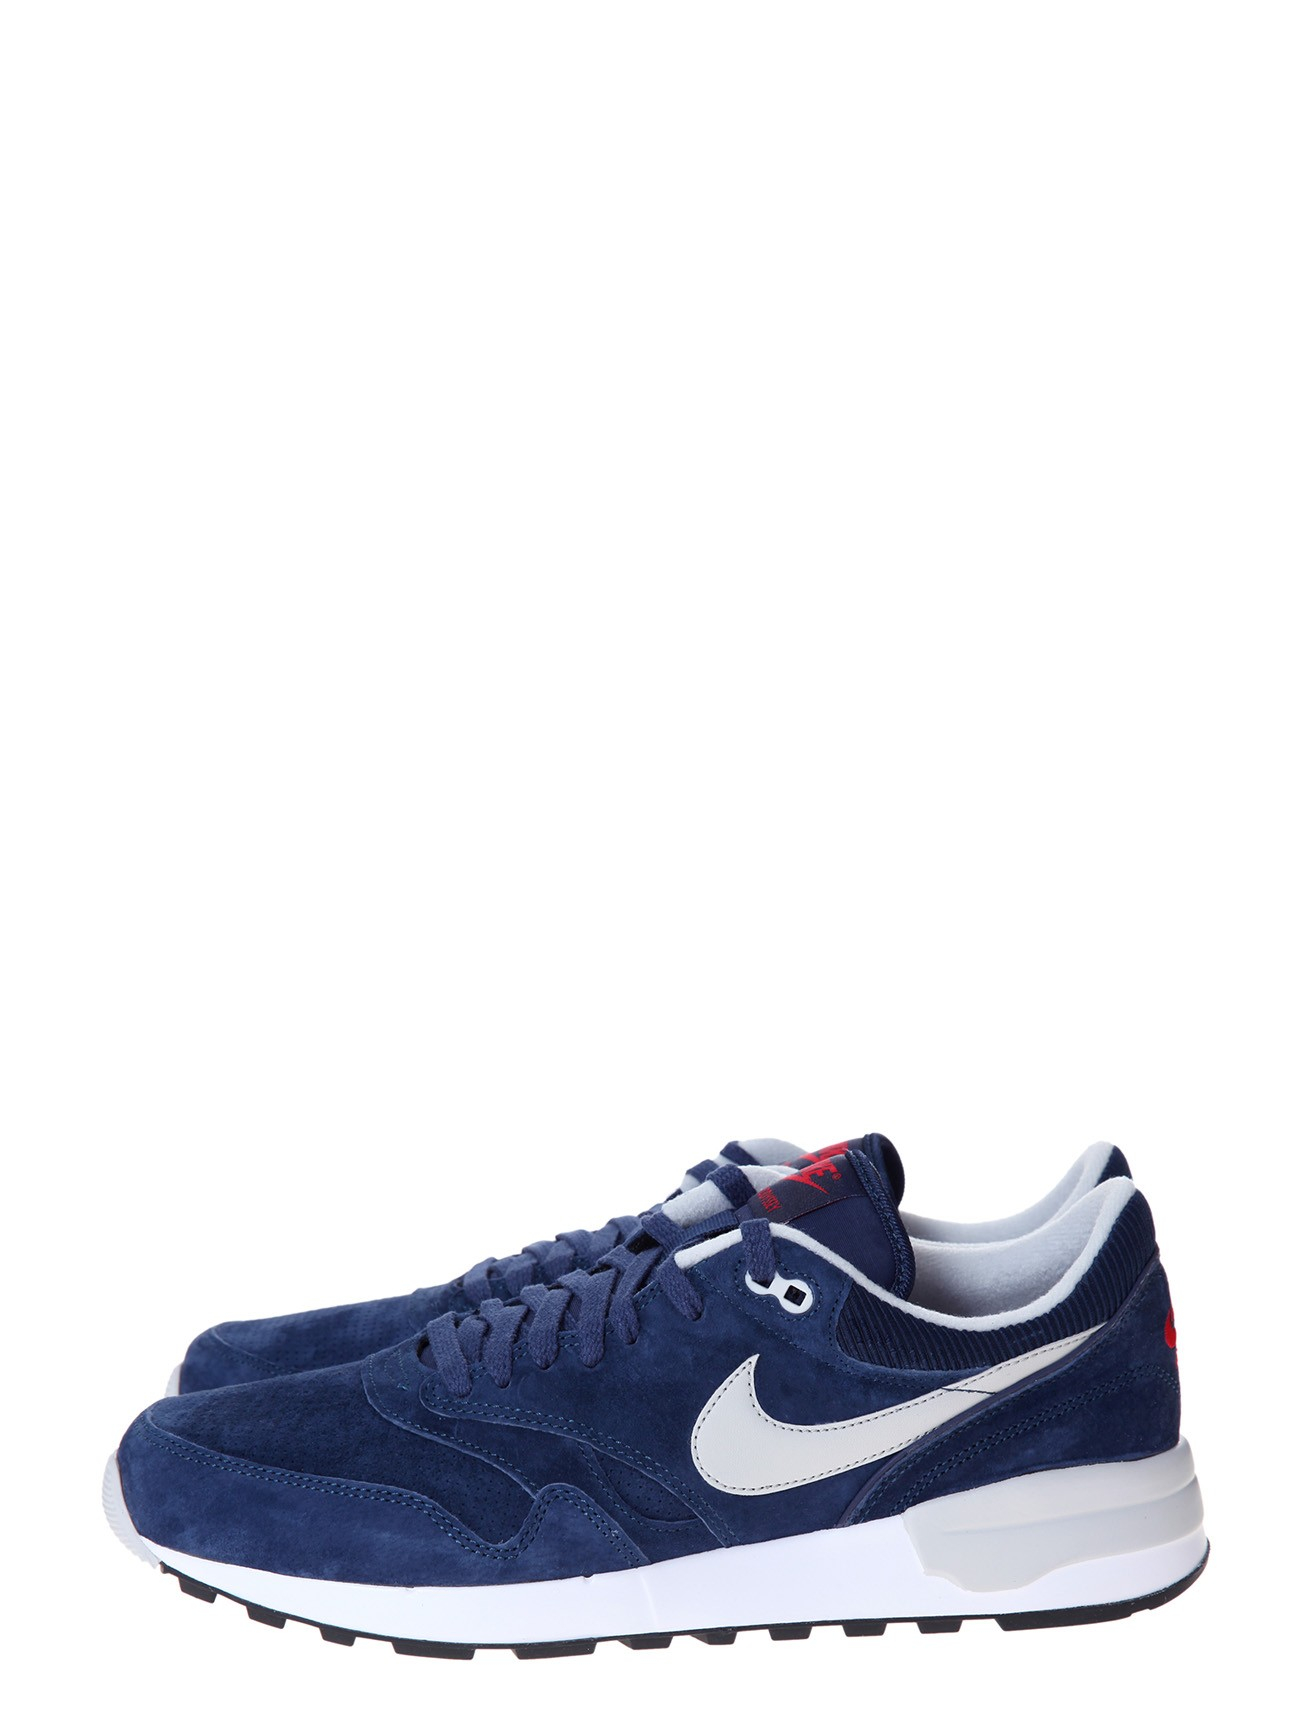 nike air odyssey ltr sneakers in blue for men navy lyst. Black Bedroom Furniture Sets. Home Design Ideas